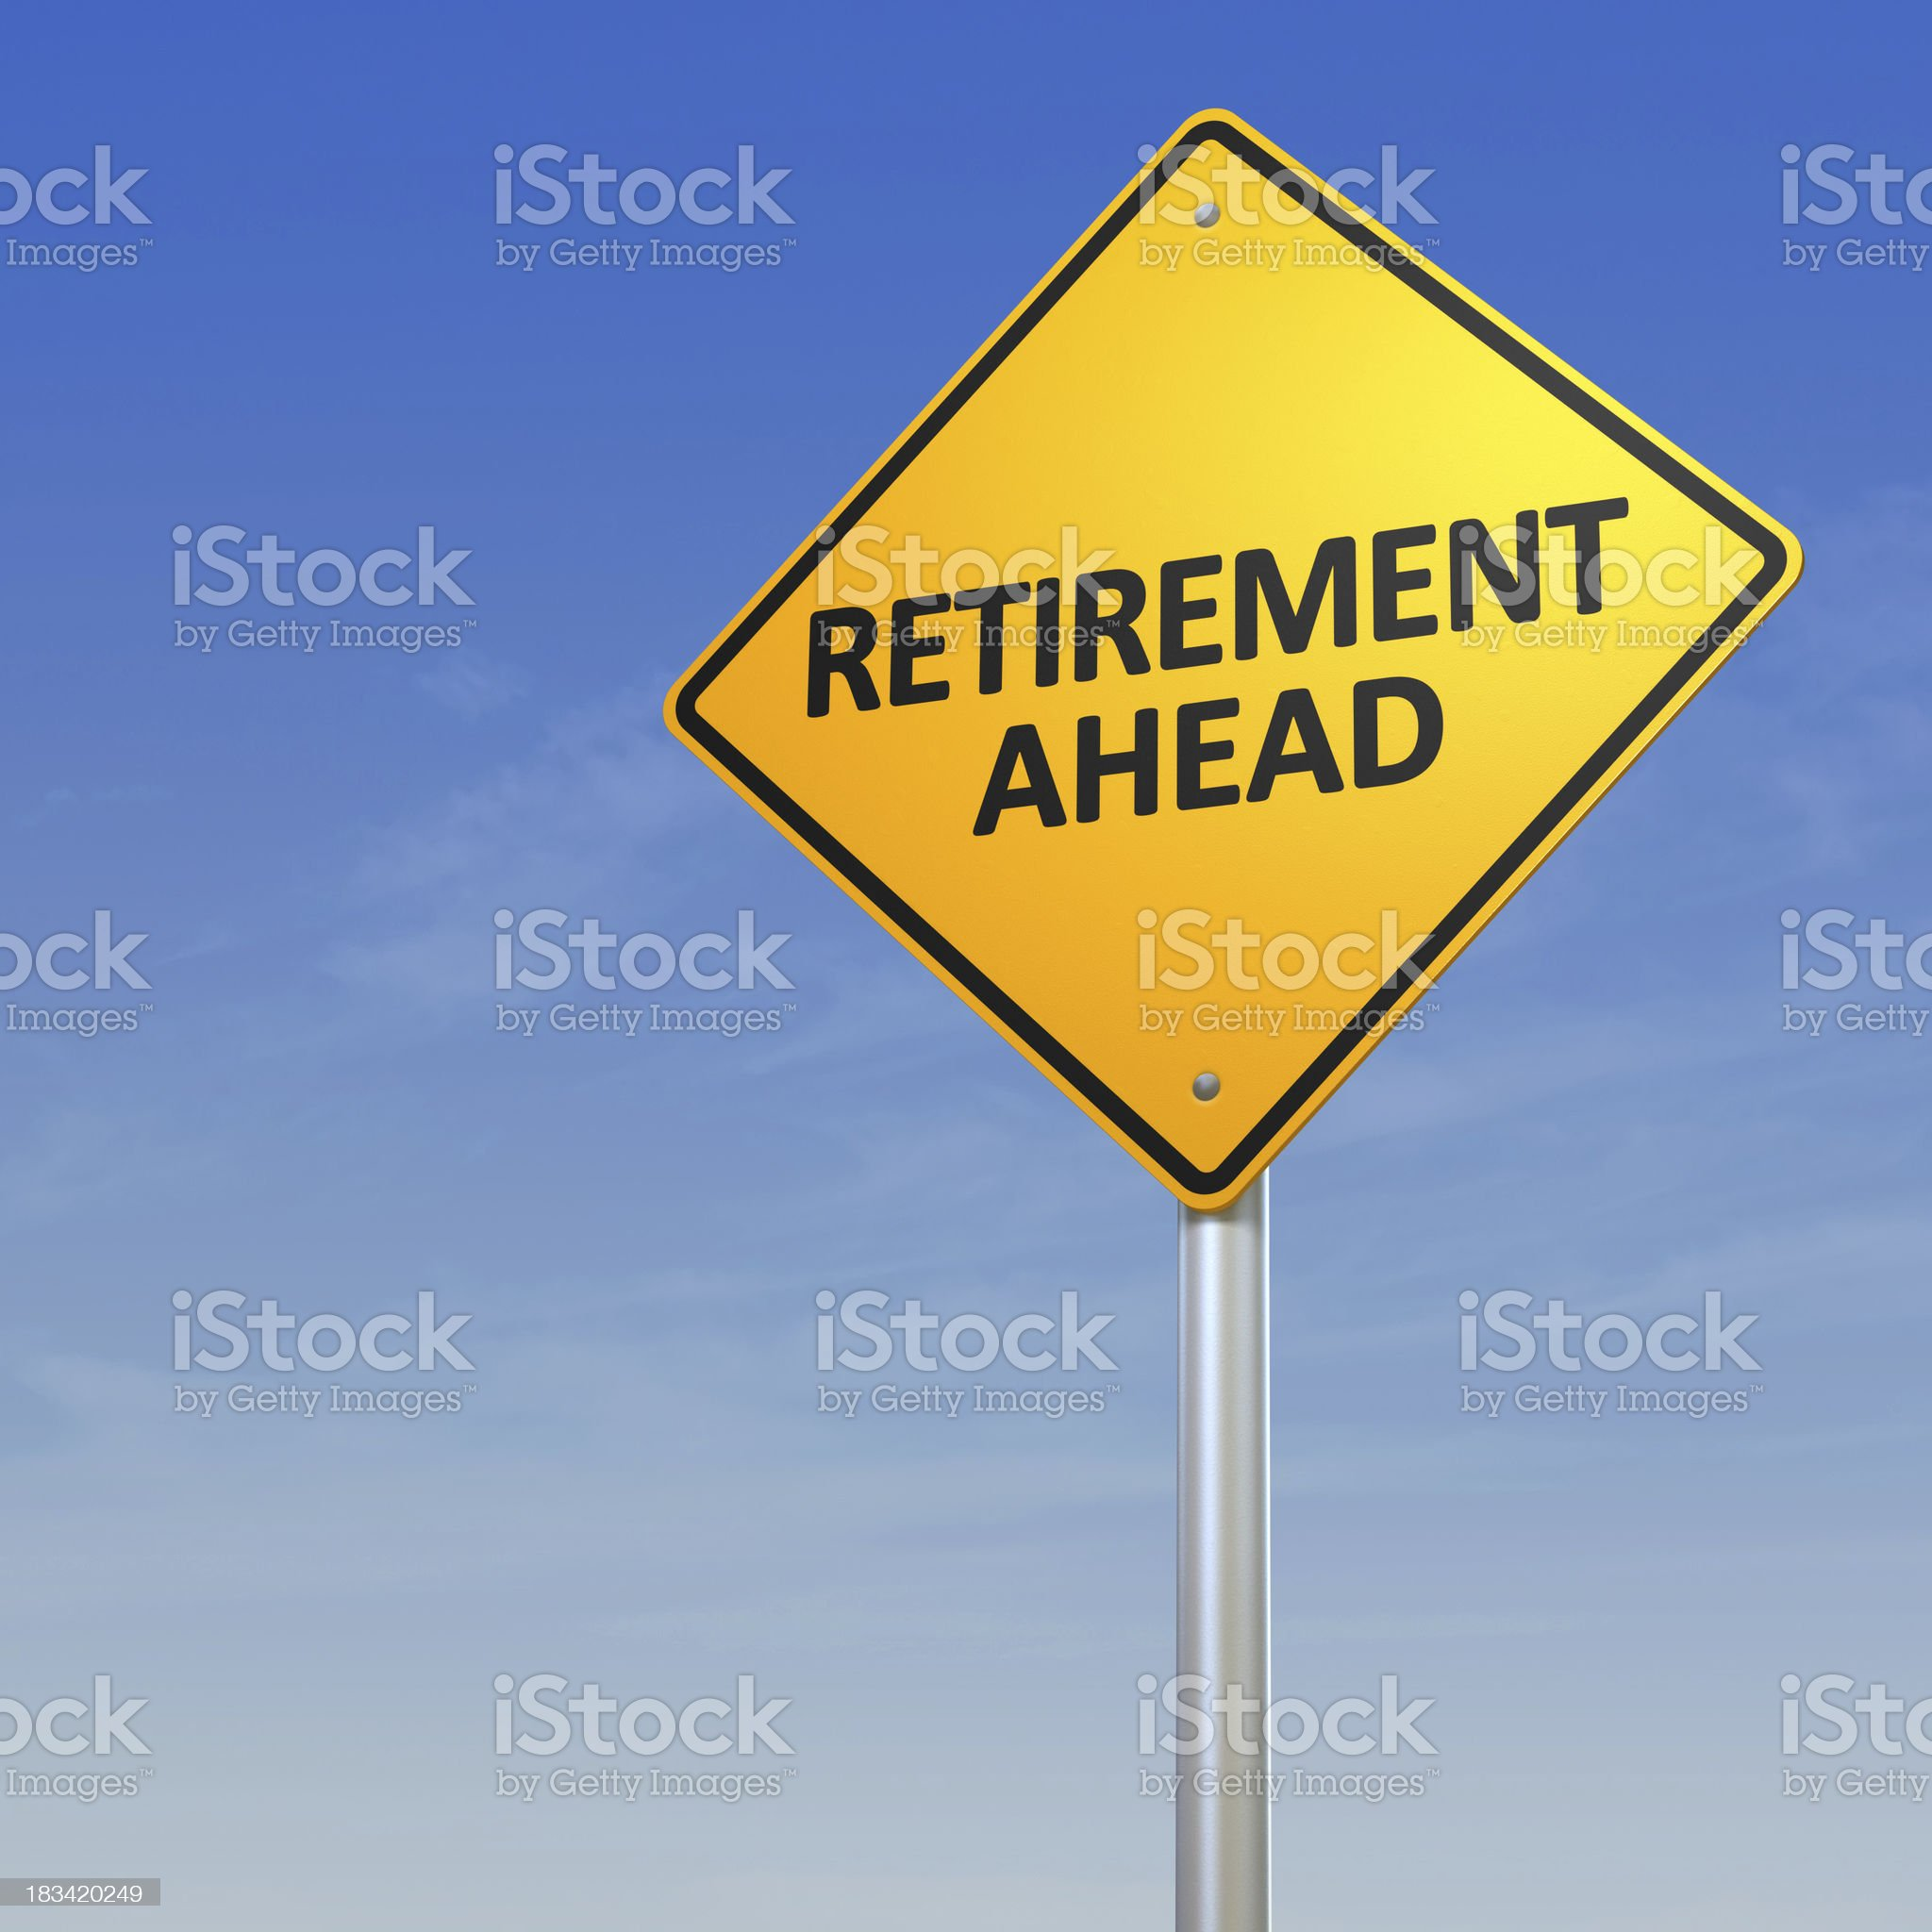 Retirement Ahead - Road Warning Sign royalty-free stock photo